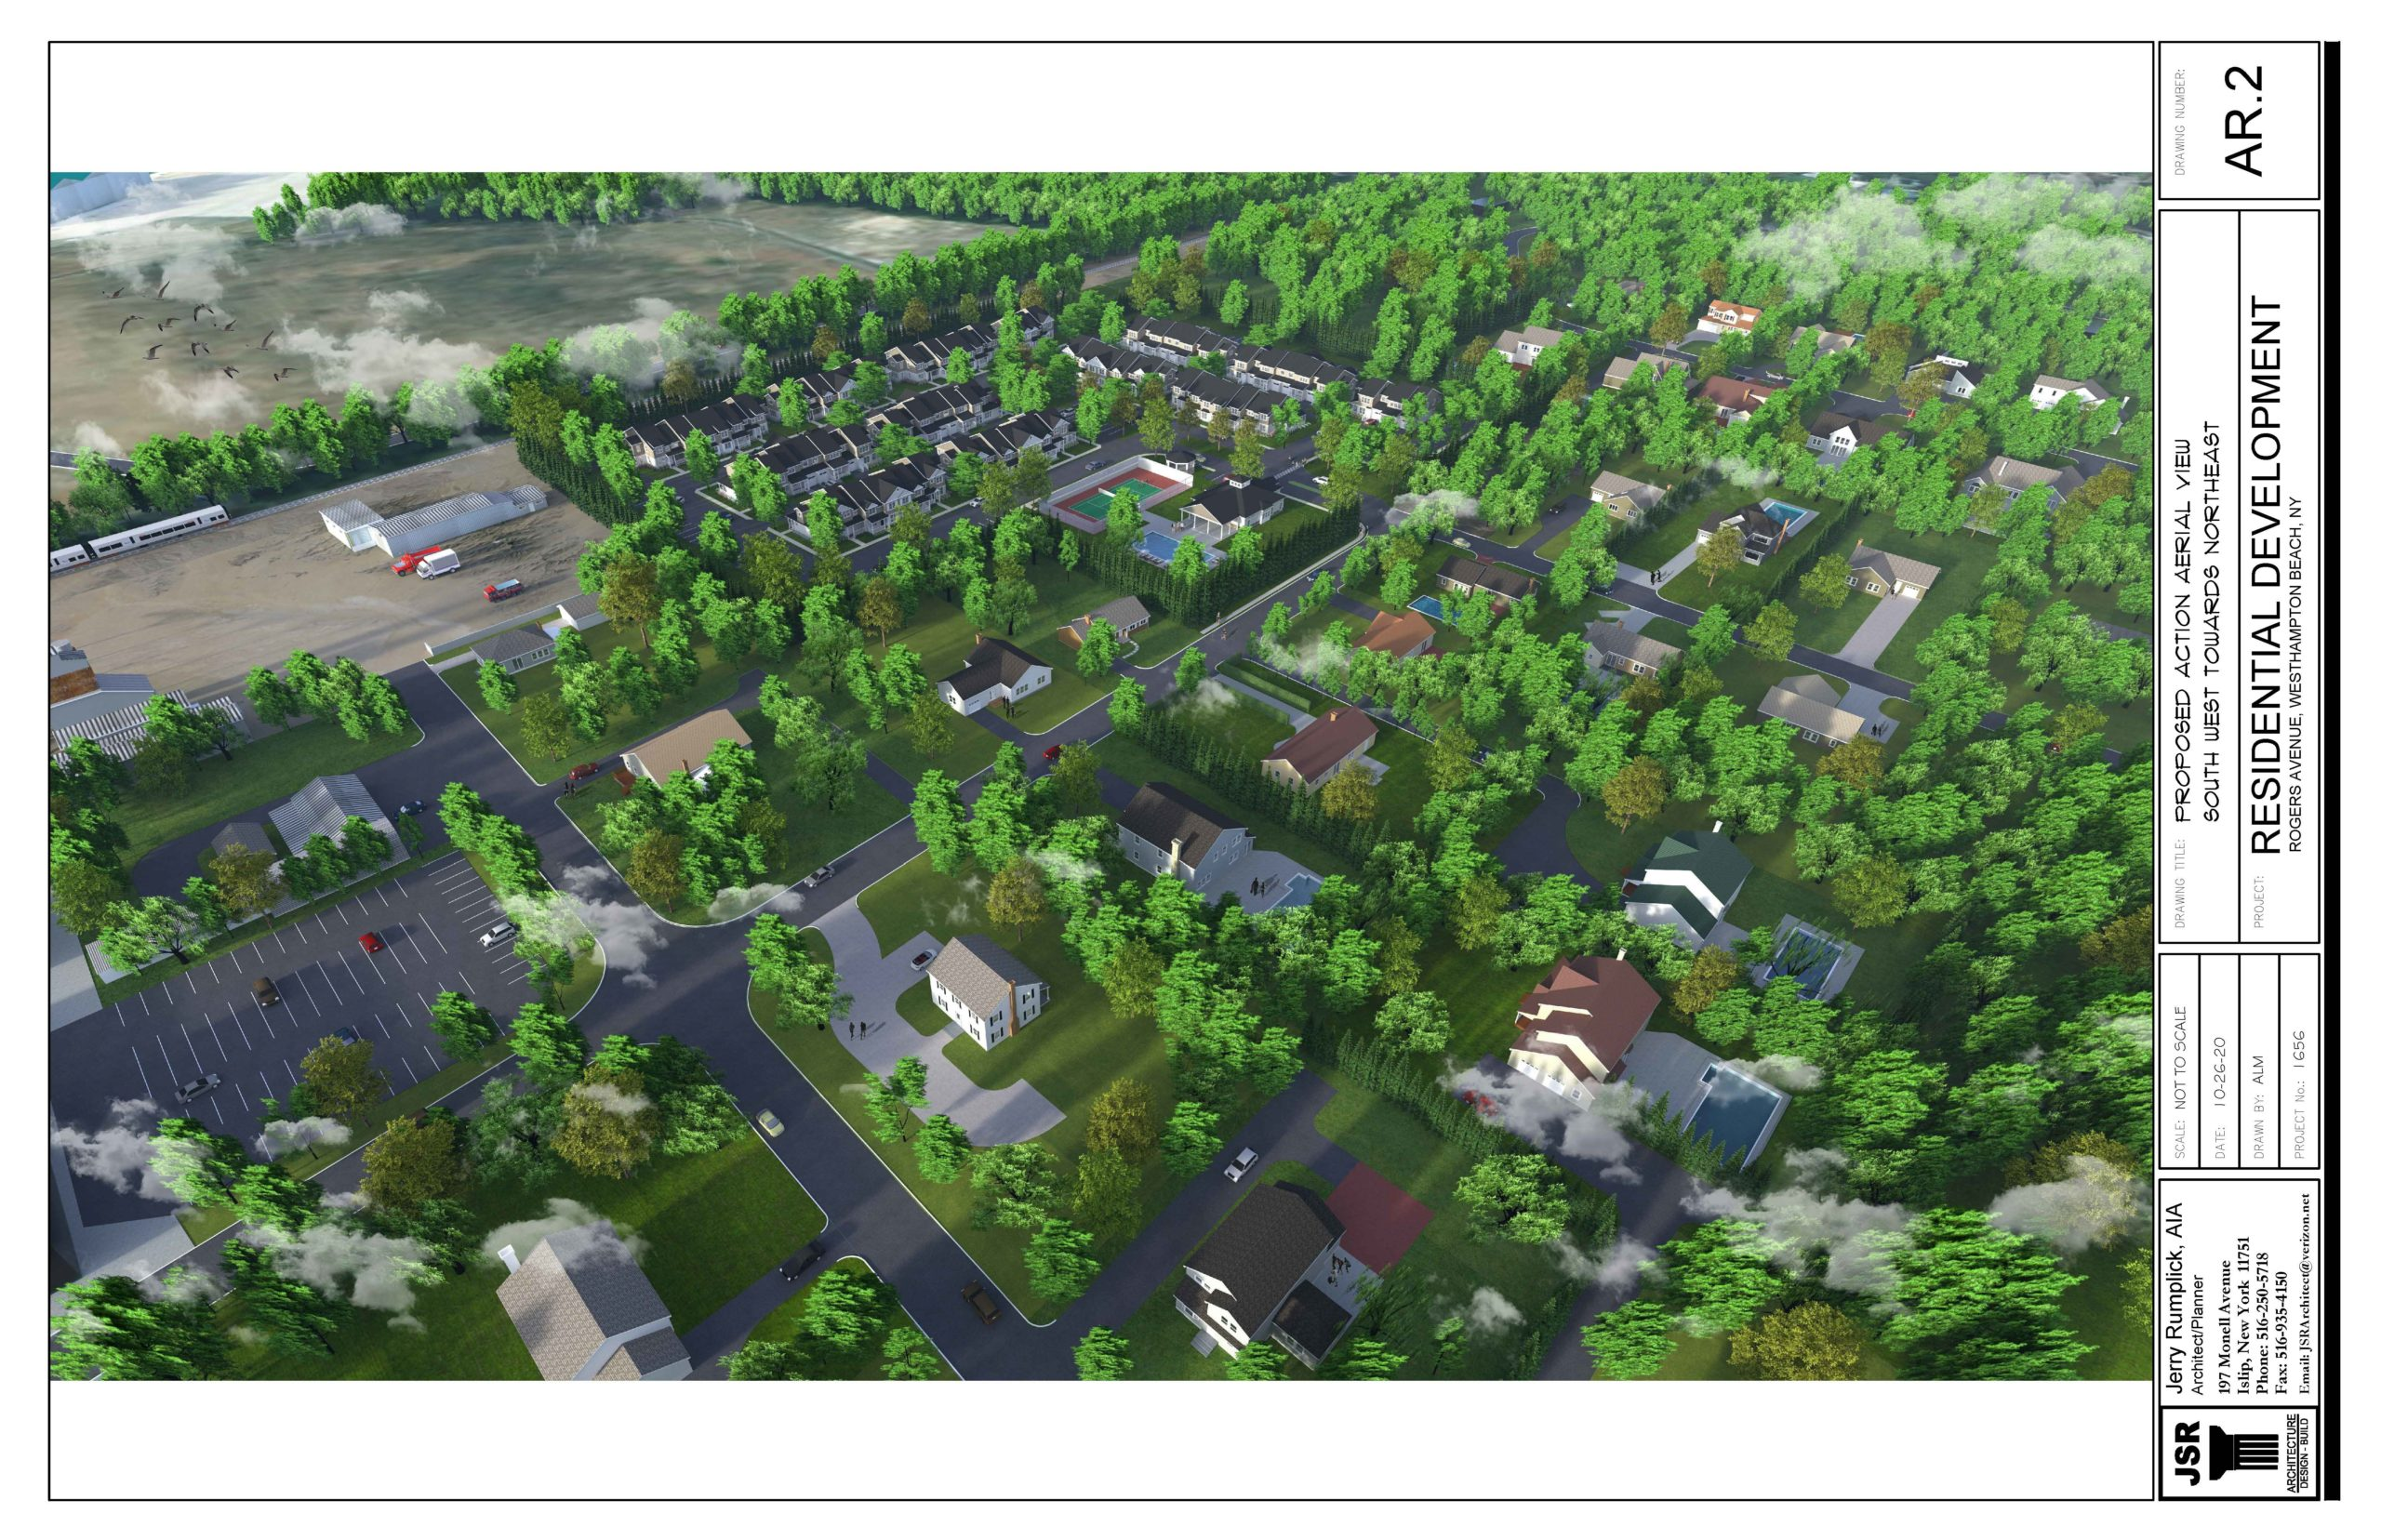 An architect's rendering of the proposed Townes at Ketchaponack, with existing homes shown in the foreground.